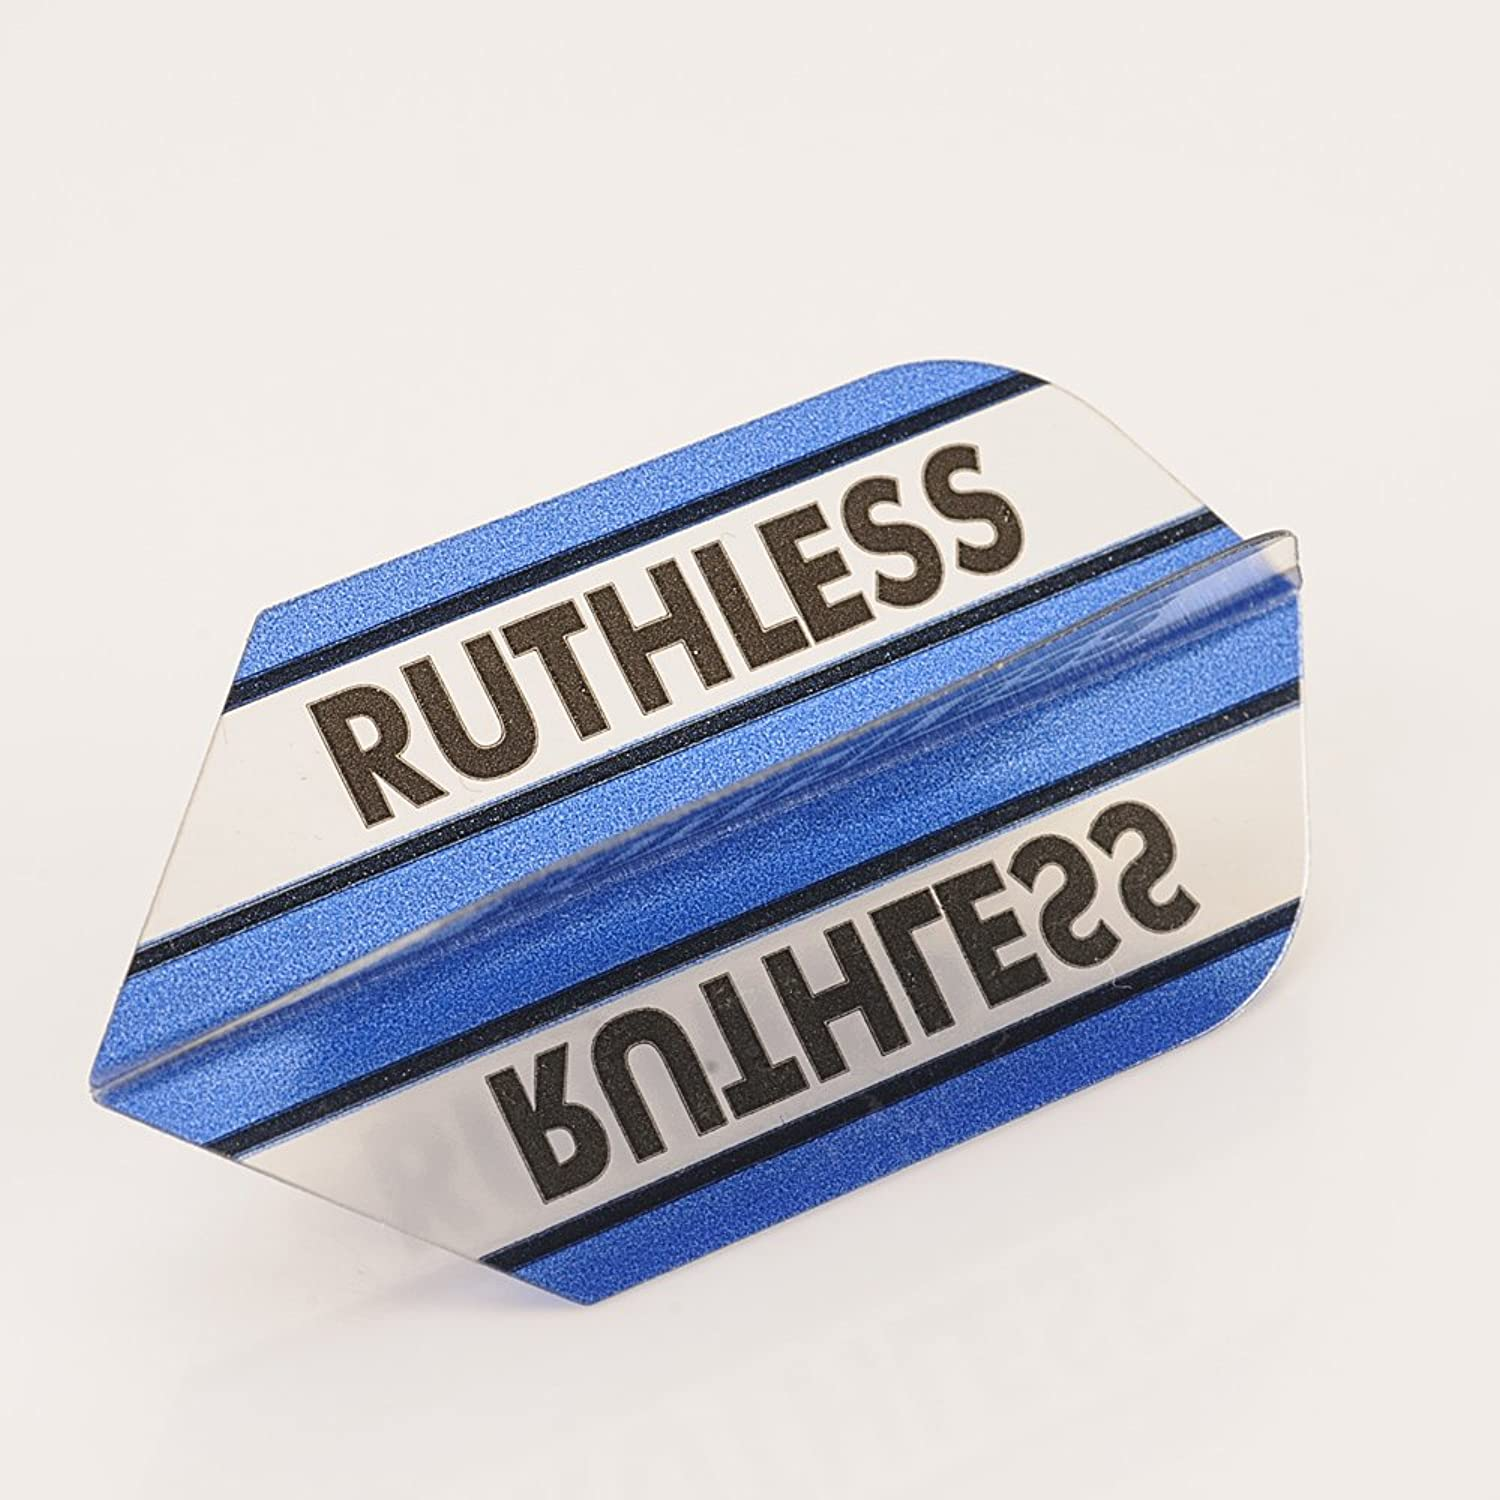 5 x Sets of Ruthless Clear Panels blueee Dart Flights, Extra T